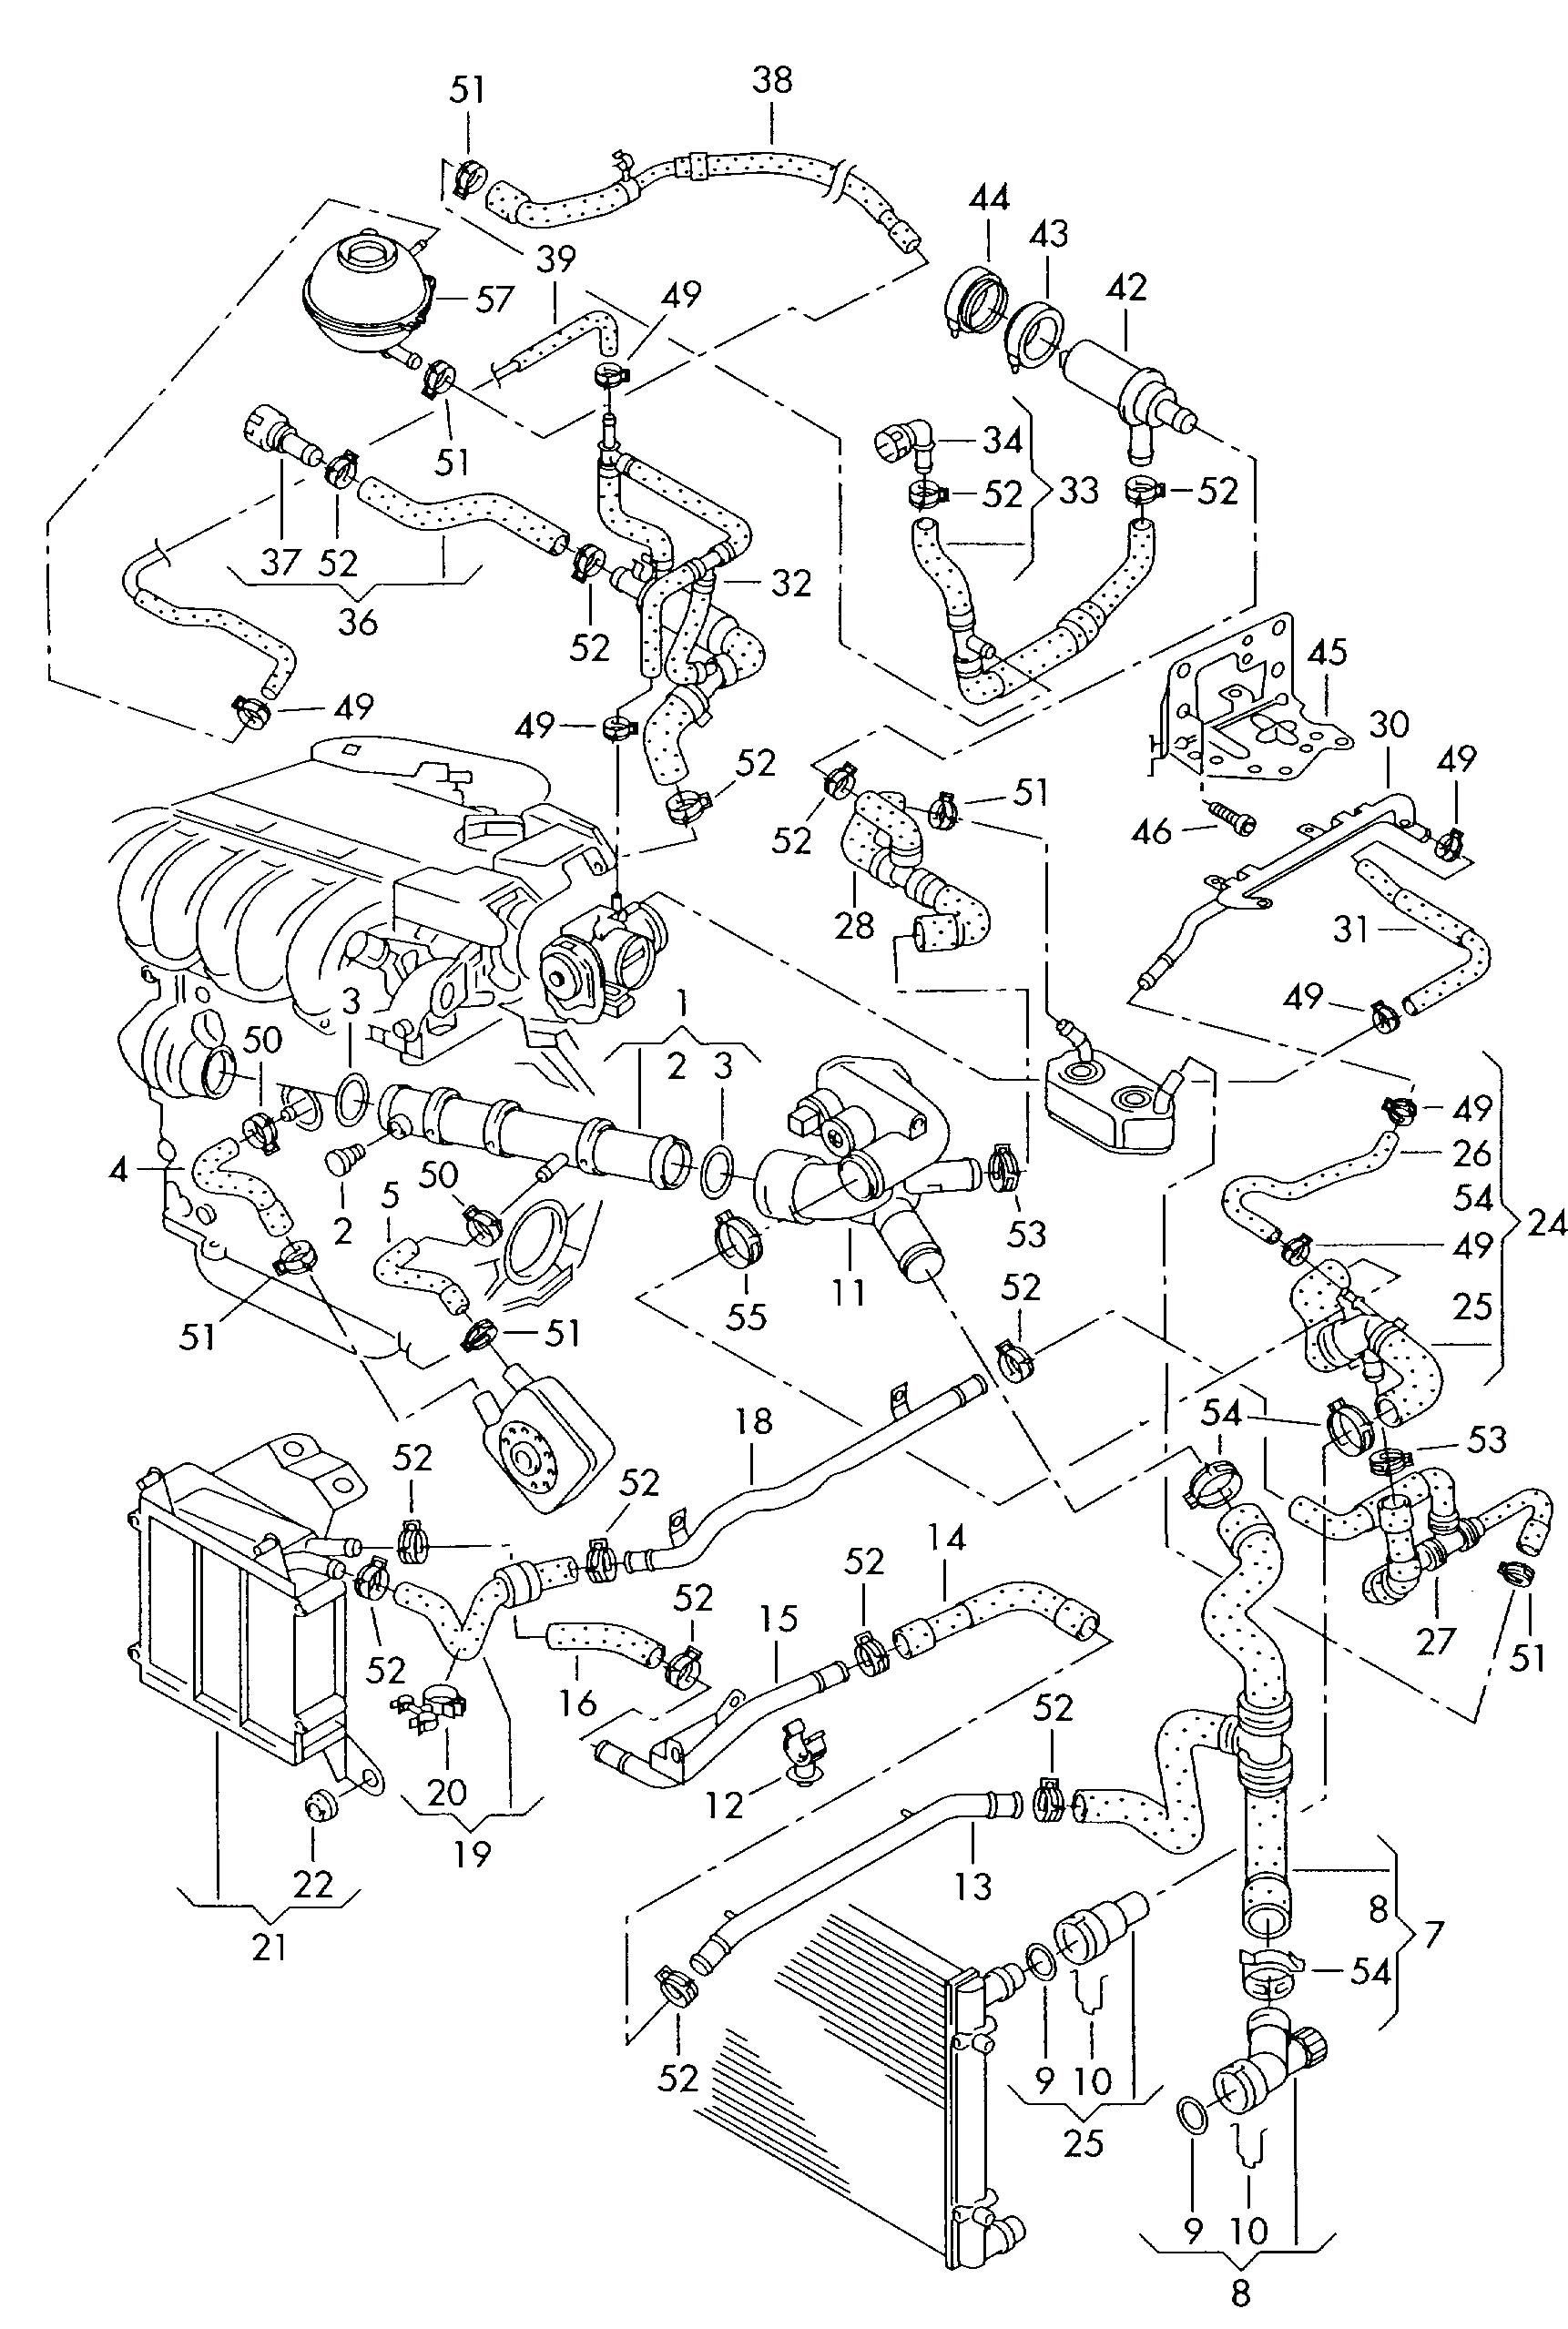 2001 Volkswagen Passat Engine Diagram 95 Jetta Engine Diagram Of 2001 Volkswagen Passat Engine Diagram